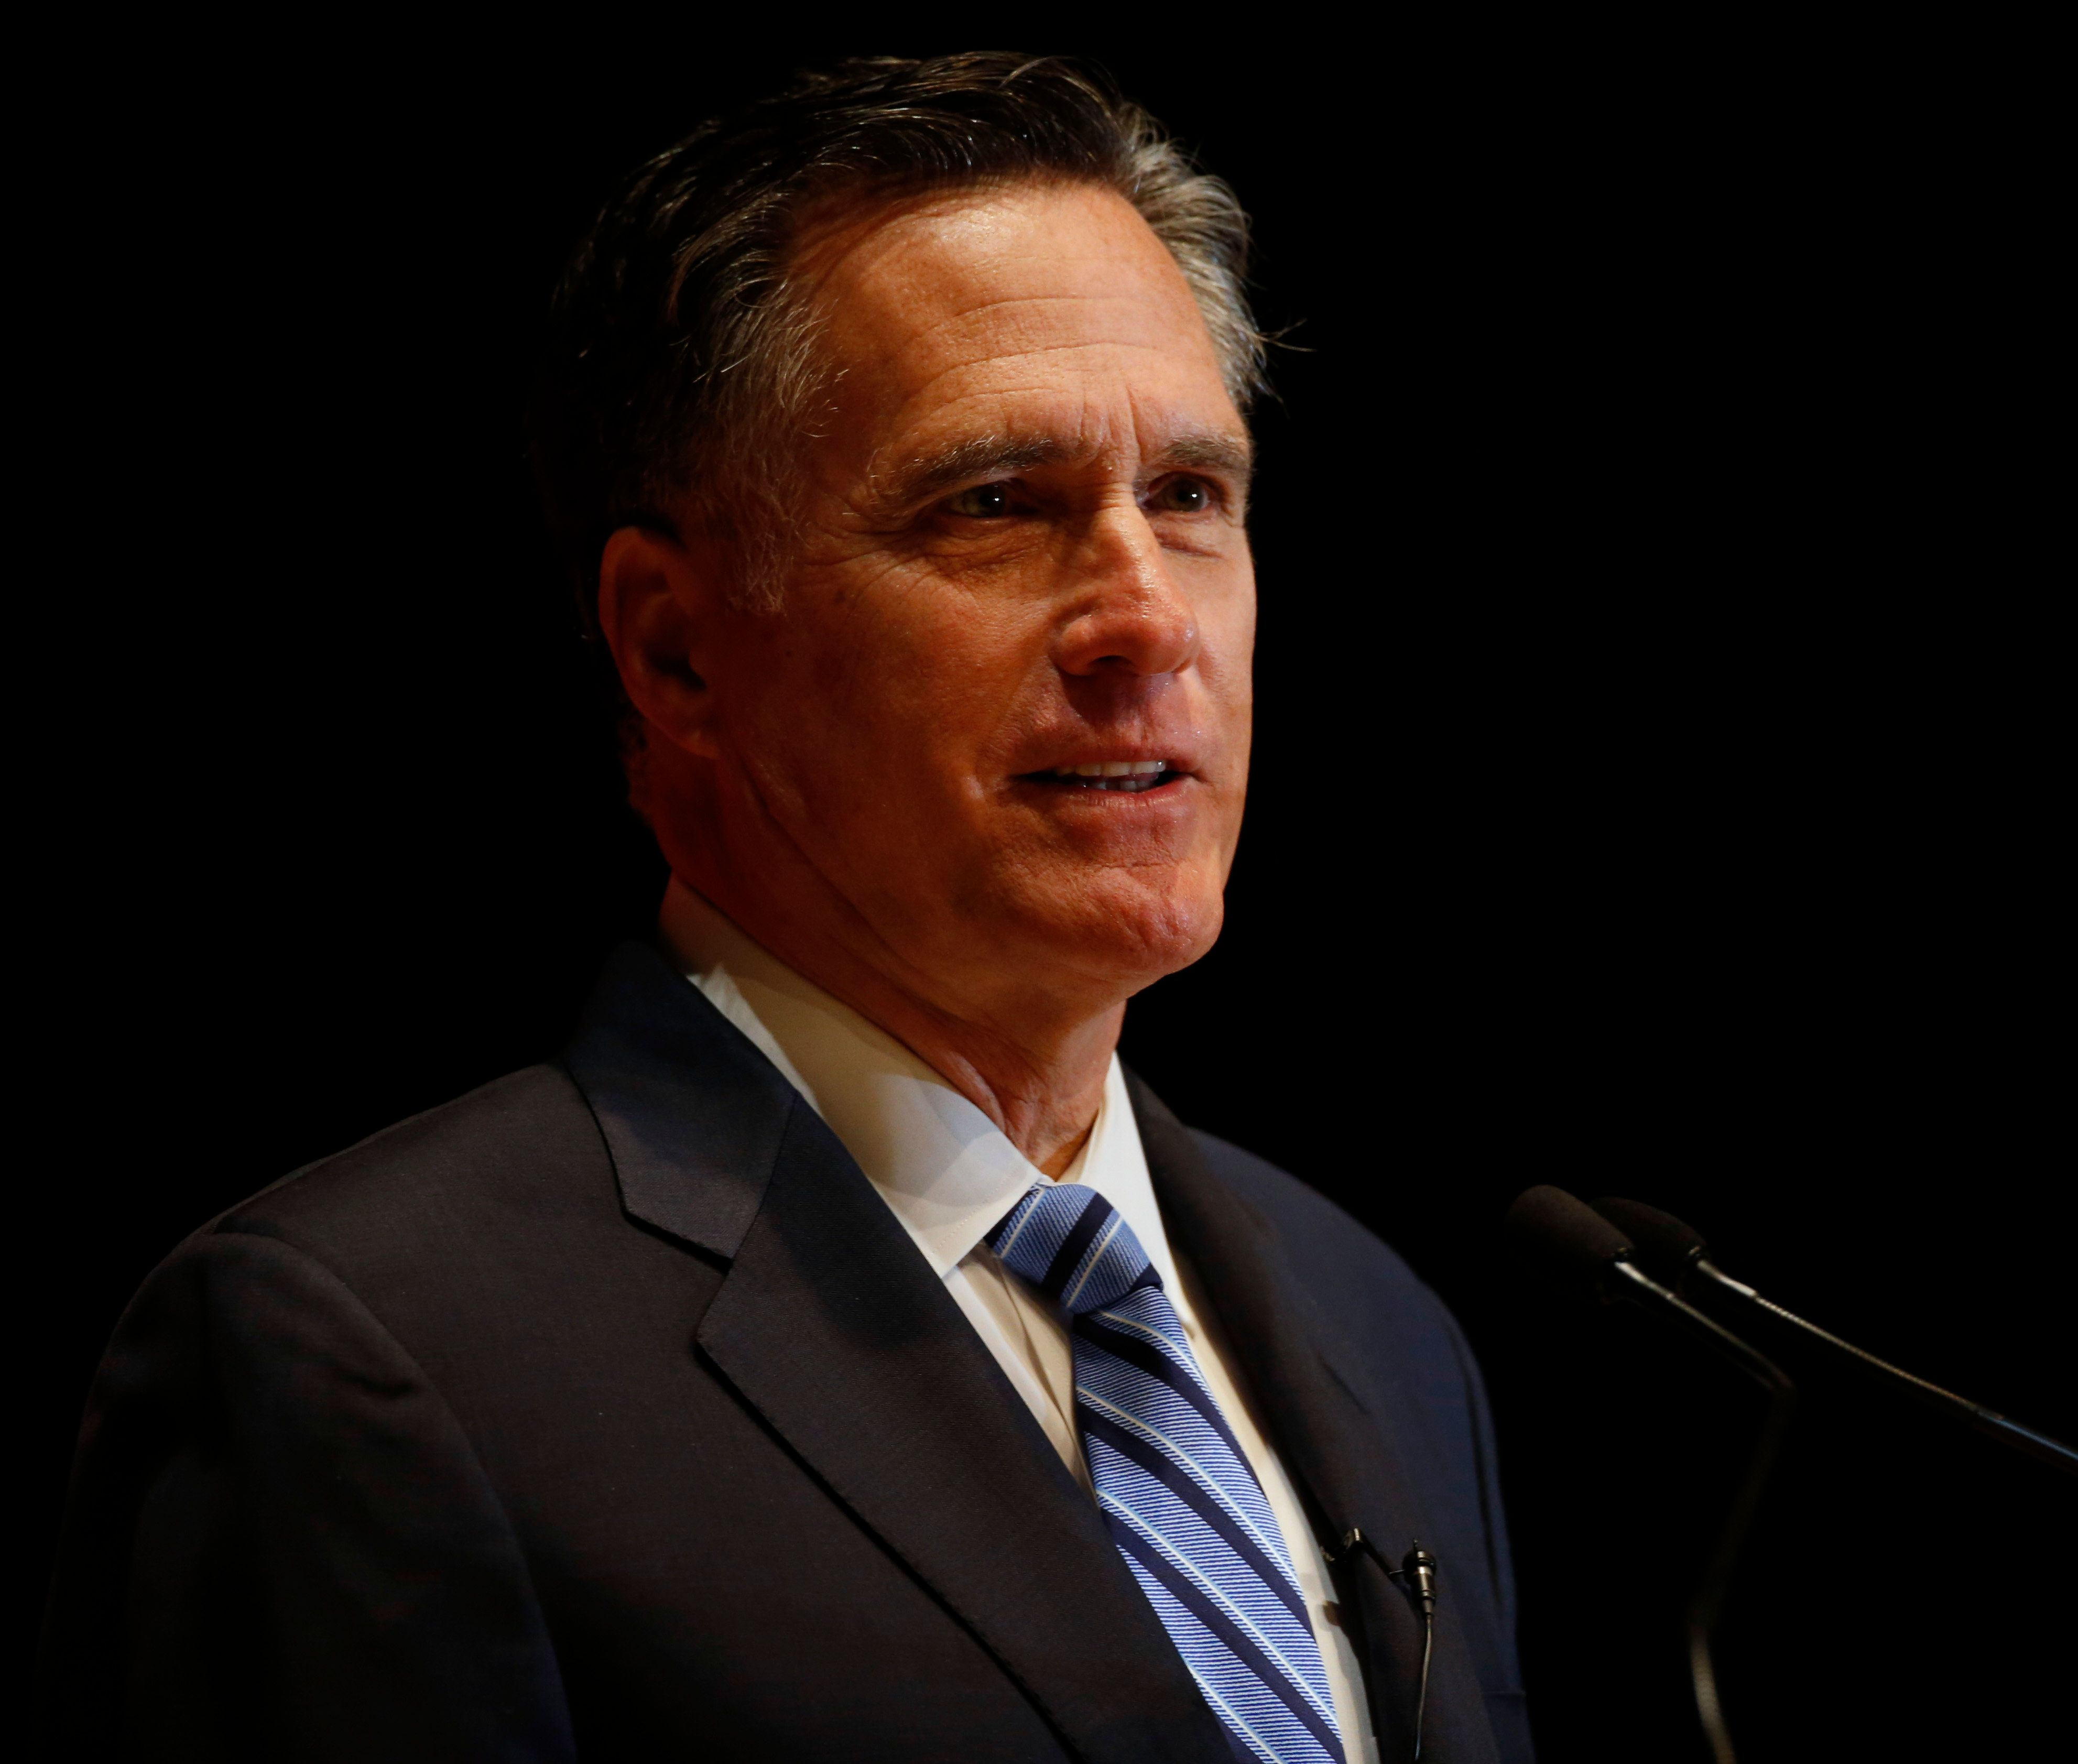 SALT LAKE CITY, UT - MARCH 3: Mitt Romney gives a speech on the state of the Republican party at the Hinckley Institute of Politics on the campus of the University of Utah on March 3, 2016 in Salt Lake City, Utah.  Romney spoke about Donald Trump calling him a fraud and arguing against his nomination.  (Photo by George Frey/Getty Images)